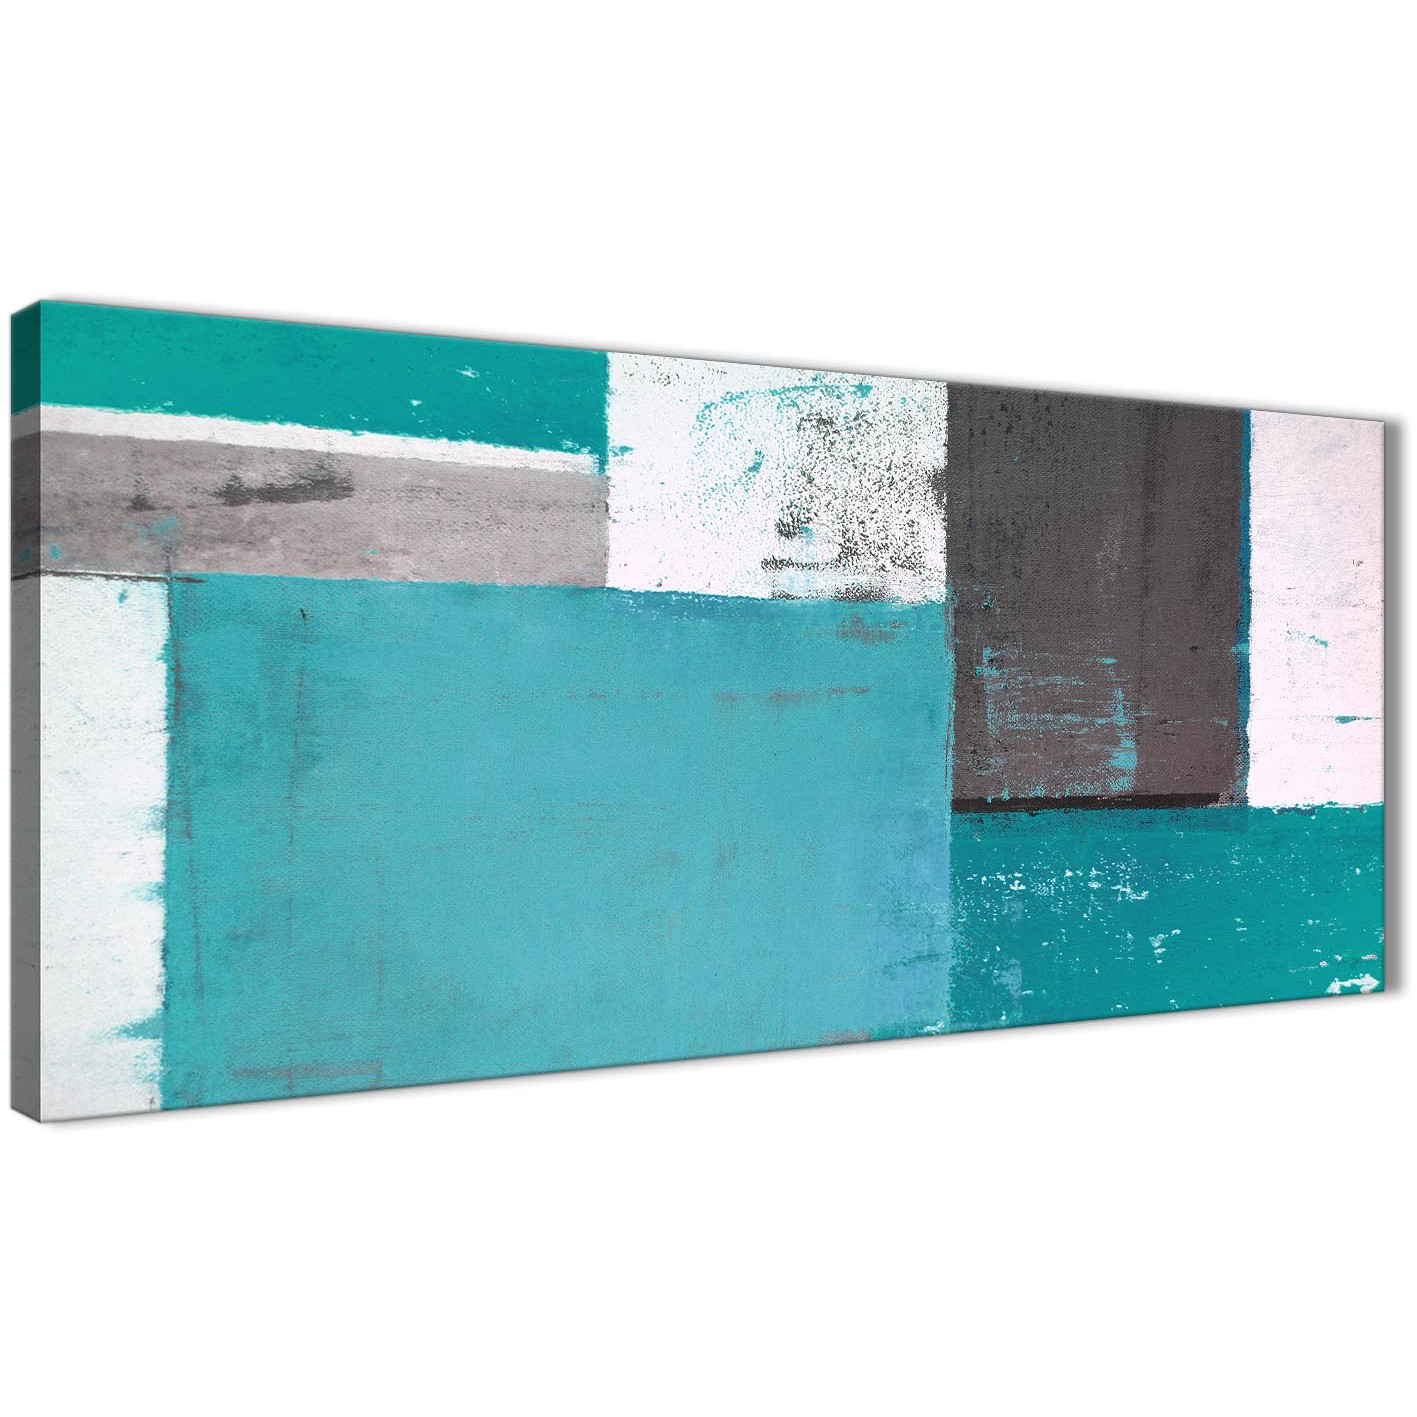 Oversized Teal Grey Abstract Painting Canvas Wall Art Modern 120cm Wide  1344 For Your Bedroom Display Gallery Item 1 ...